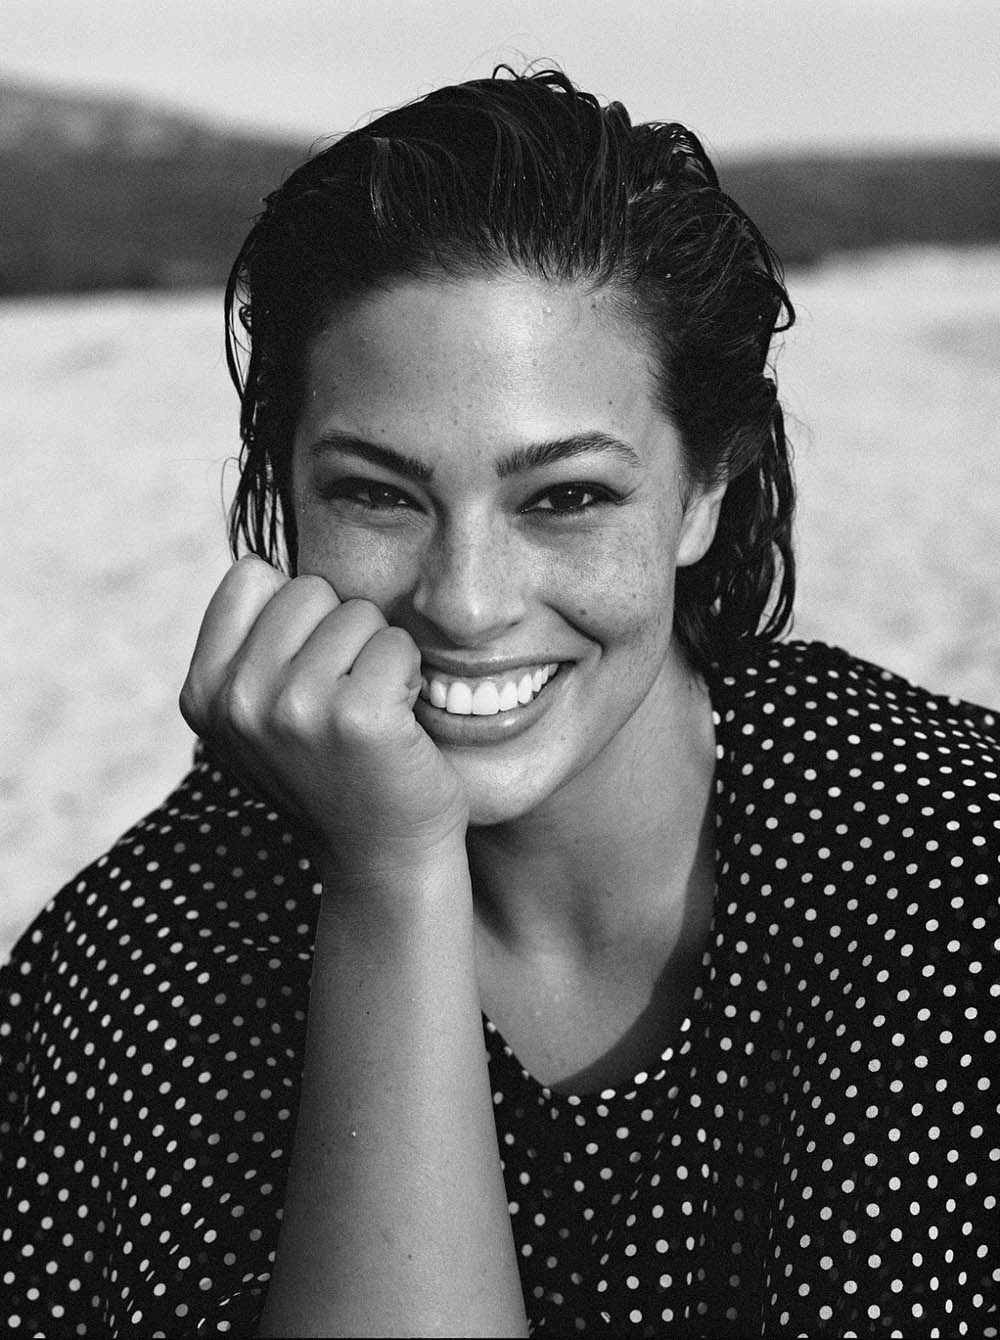 Ashley-Graham-by-Lachlan-Bailey-for-Vogue-Paris-November-2018-4.jpg